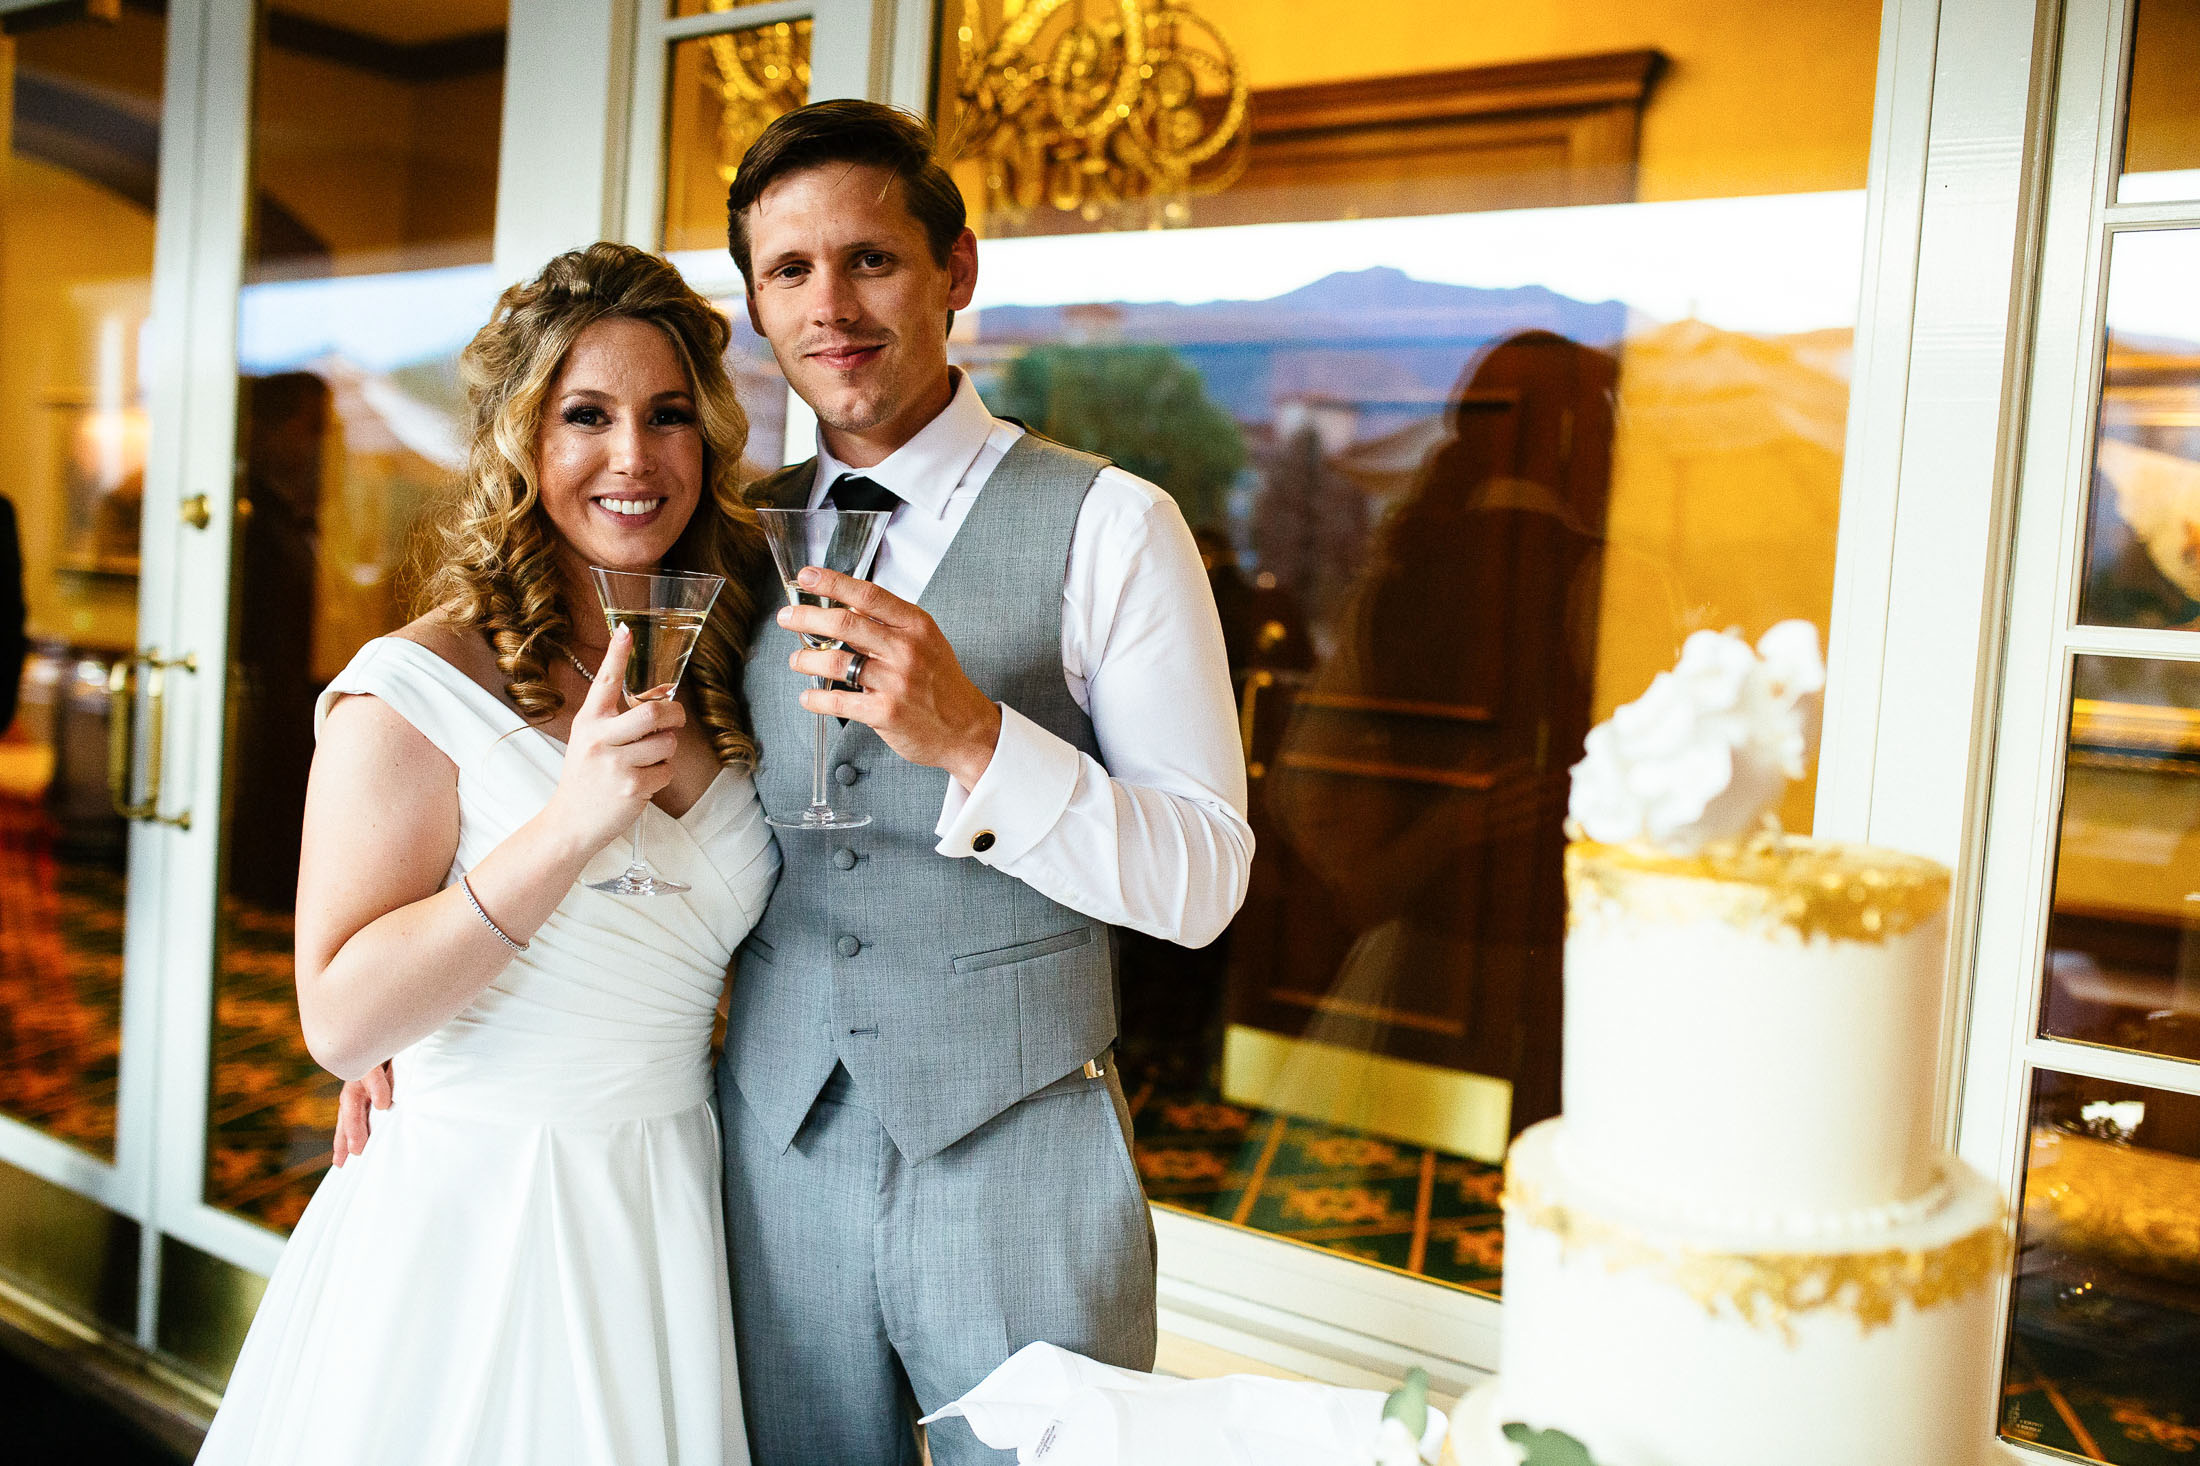 Bride and groom toast each other in front of wedding cake during their wedding reception at The Broadmoor.